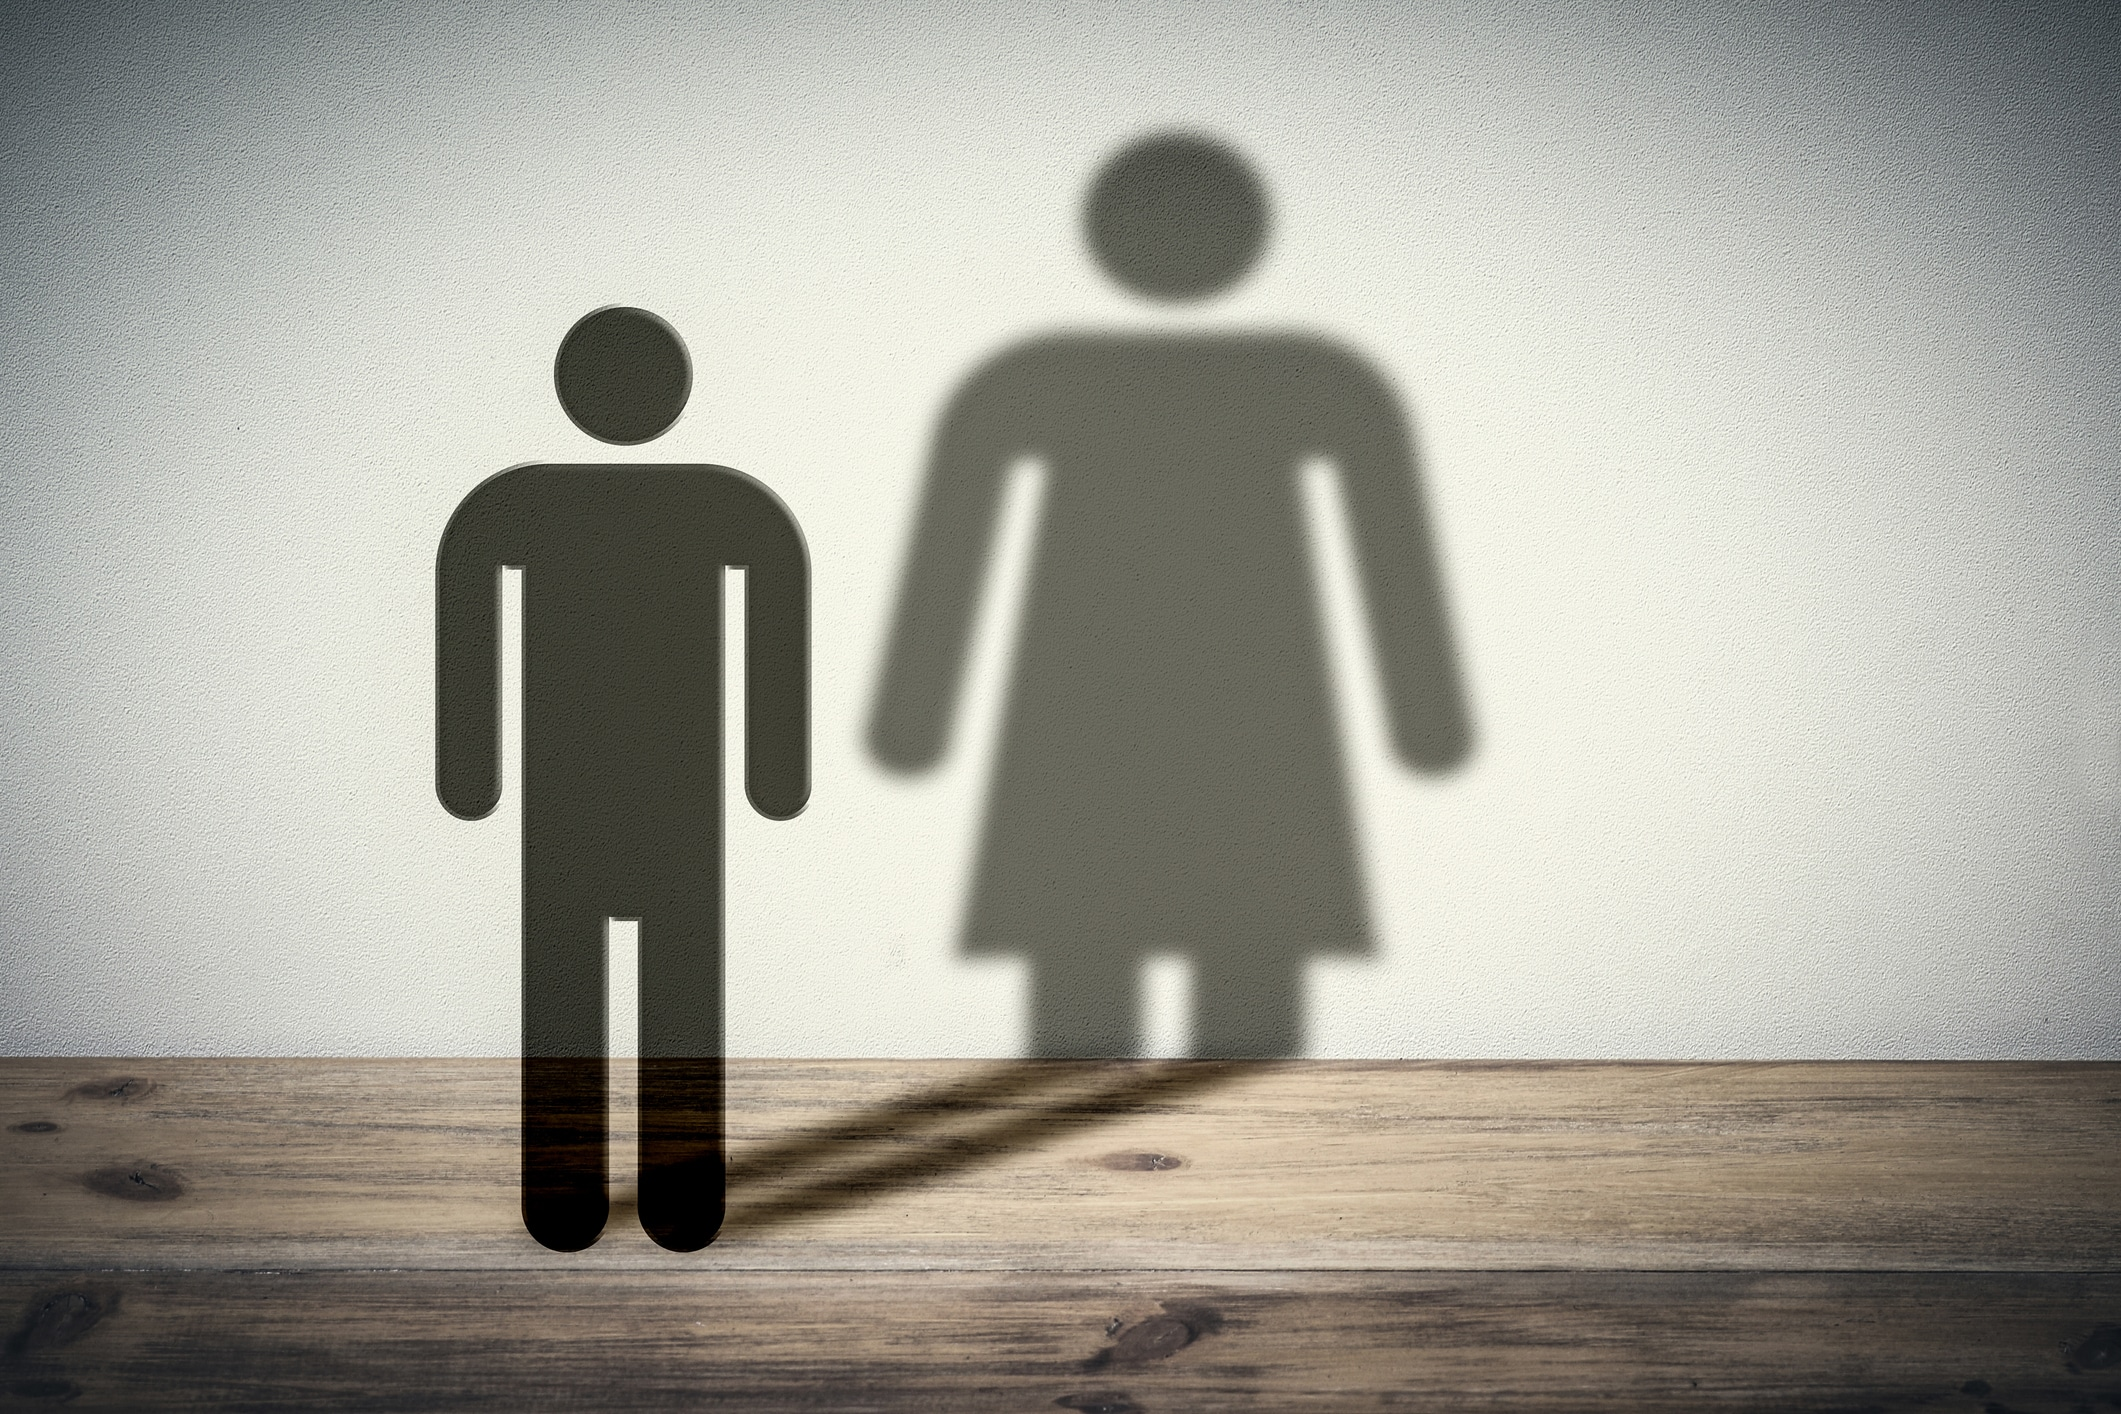 Novel Issues Raised by Transgender Human Rights Complaints